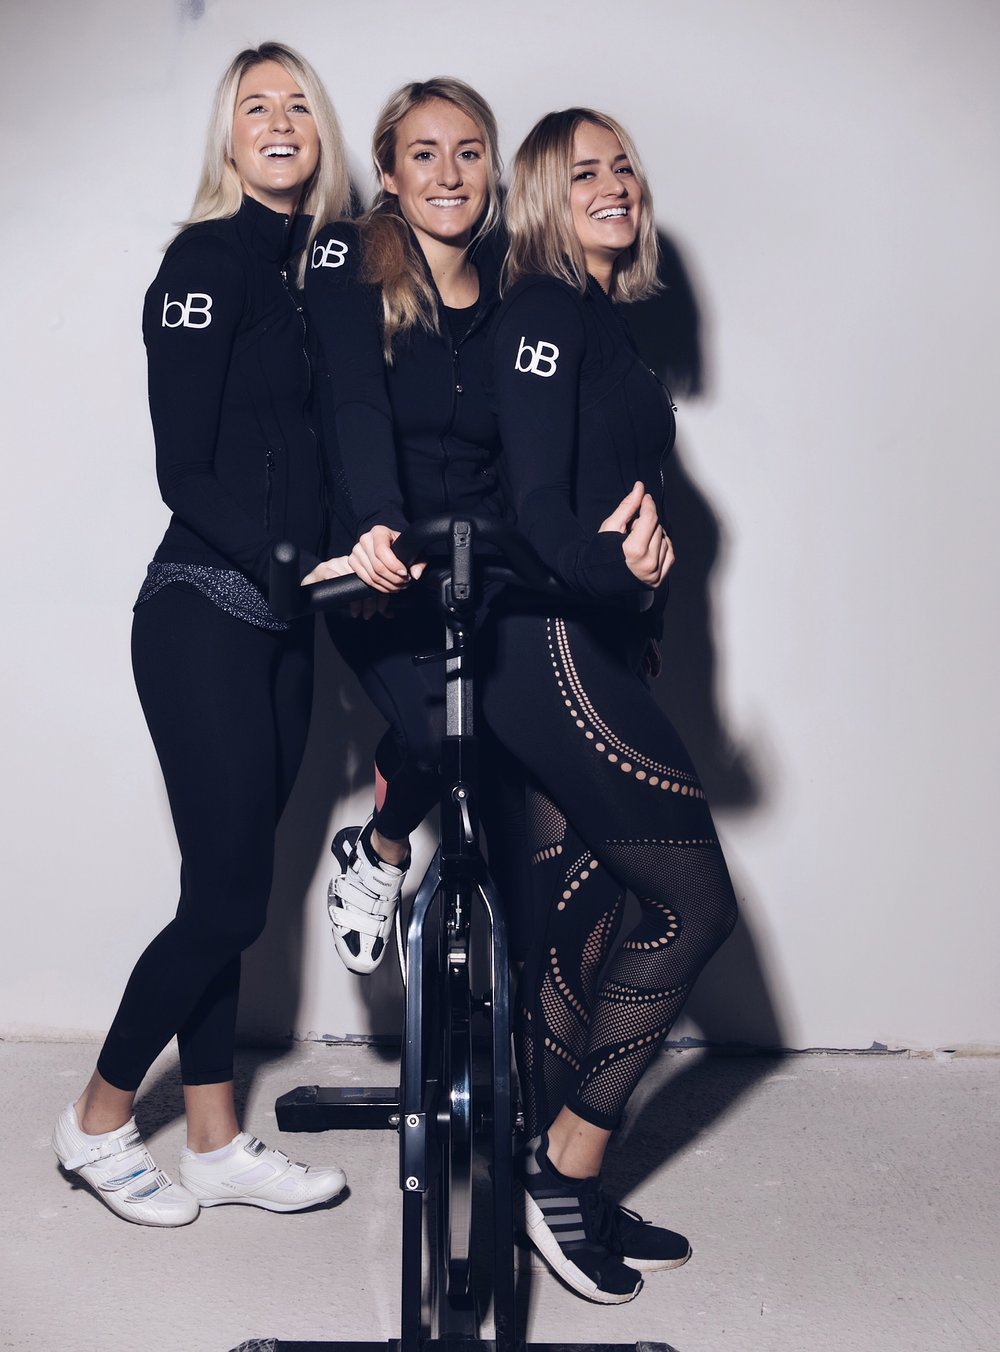 "Our story - The three of us (Maxi, Lena & Chiara) met during our sports management course at university. Whilst doing a semester in California in 2013 we came across indoor cycling and the idea of opening our own studio someday was born. After spending four months in the US and cycling like three maniacs, we decided ""we're bringing this to Germany"". Five years have passed since then and we are finally very proud owners of our own studio. It wasn't easy to get here but we kept on fighting for our dream. We are super psyched to be able to share our passion with you at last. Come join us and see what the fuss is all about. You won't regret it."